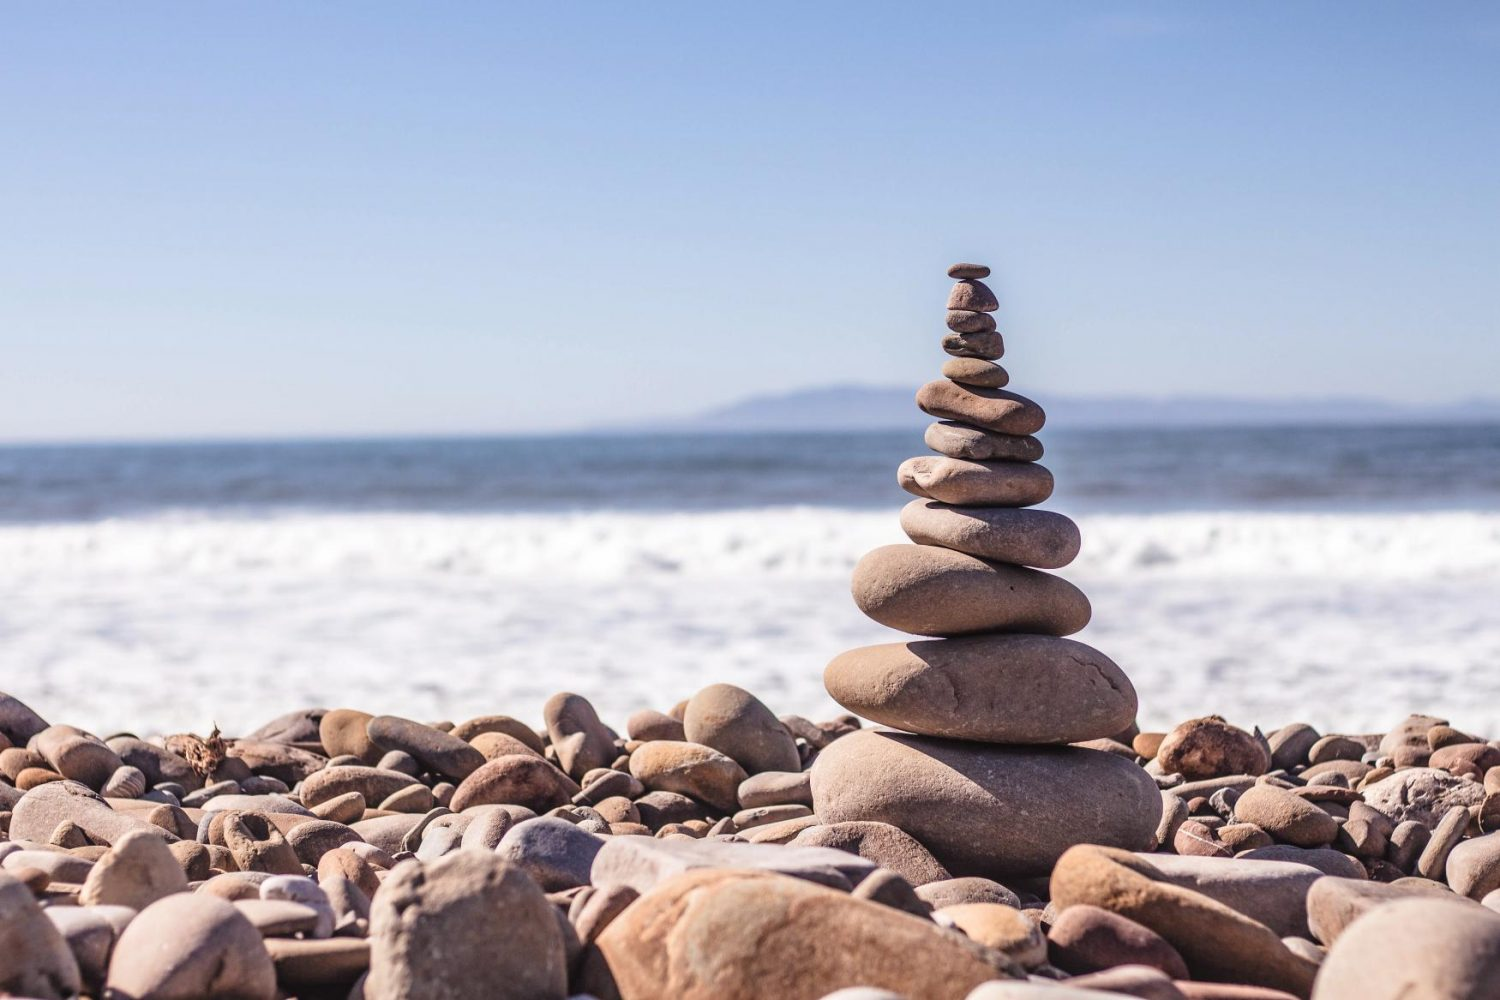 Balancing your values with other people's values | Balanced People